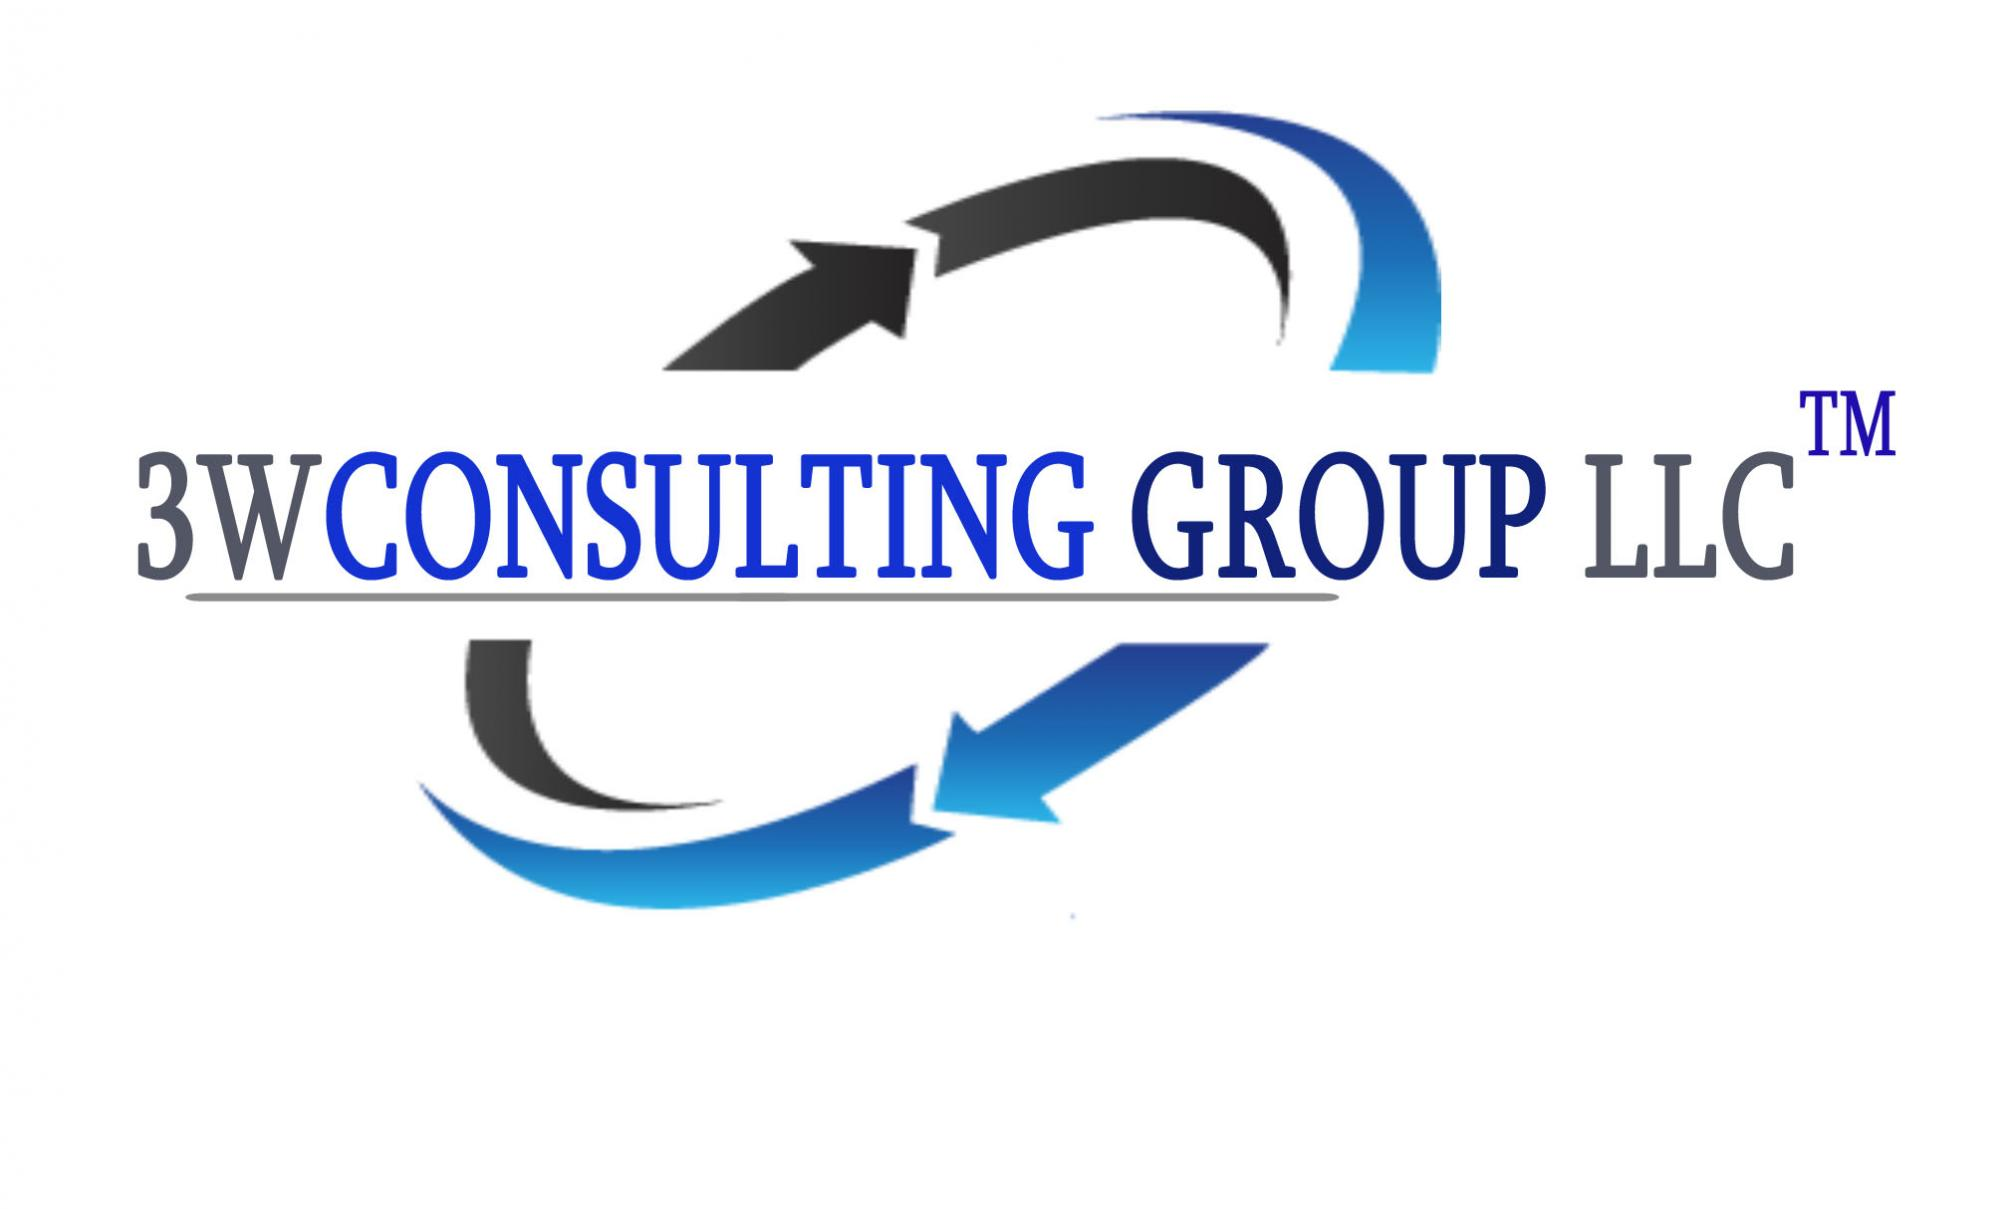 3W Consulting Group LLC Logo